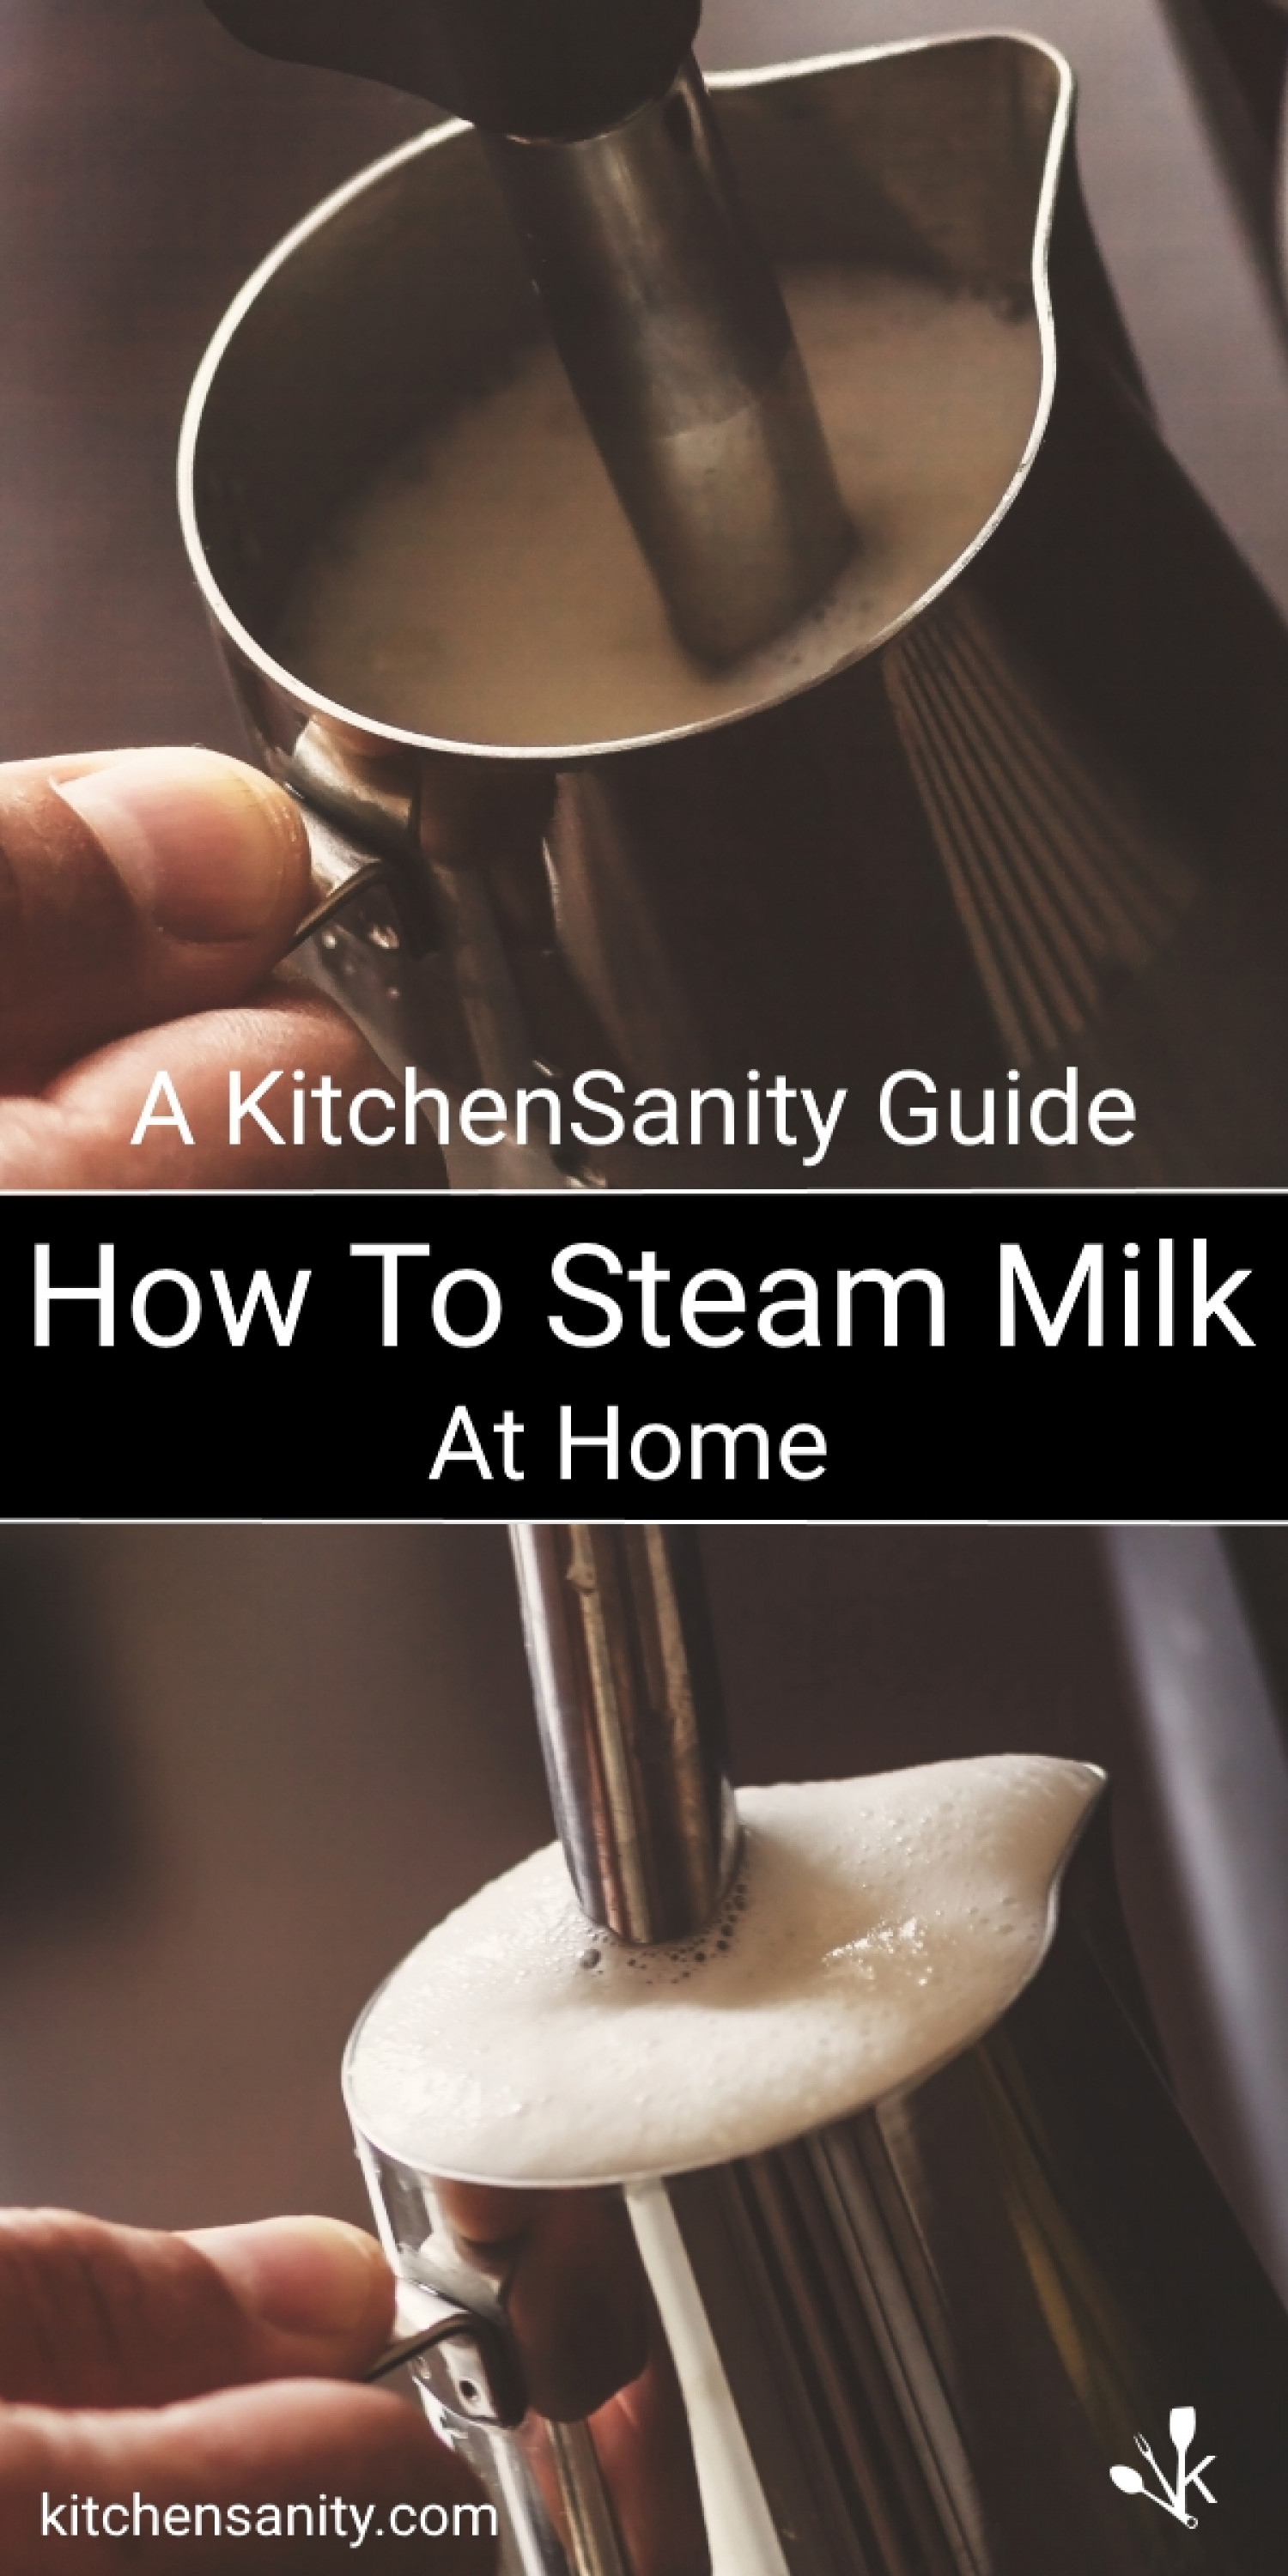 How To Steam & Froth Milk Infographic